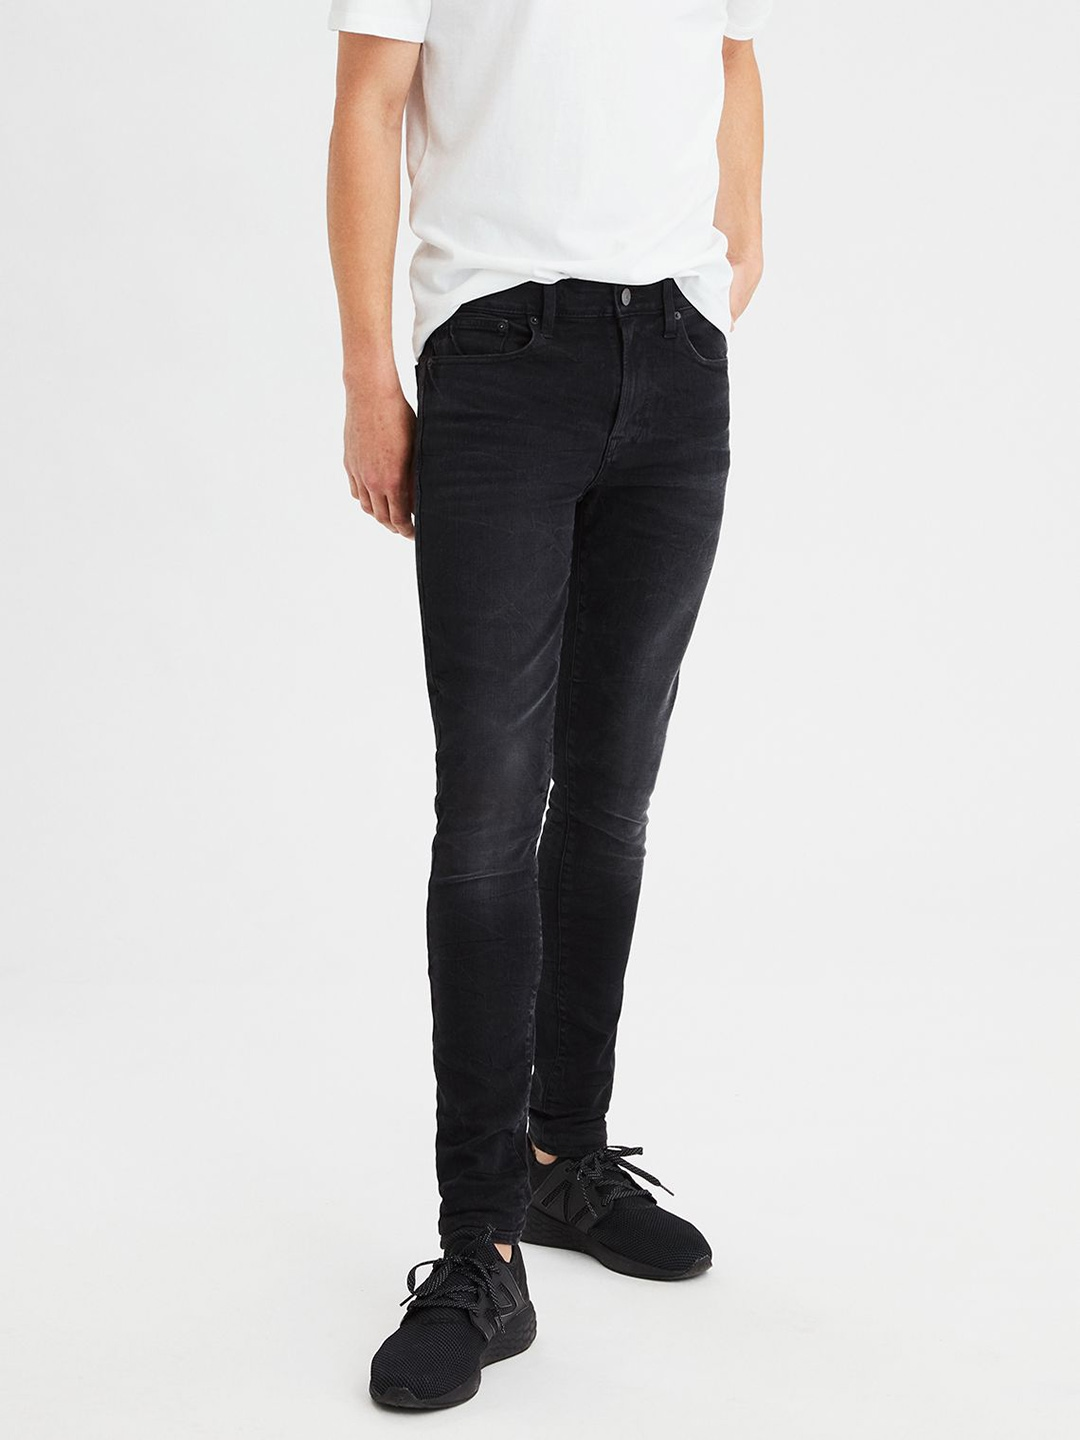 1b8bd802 AMERICAN EAGLE OUTFITTERS Men Black Regular Fit High-Rise Clean Look  Stretchable Jeans